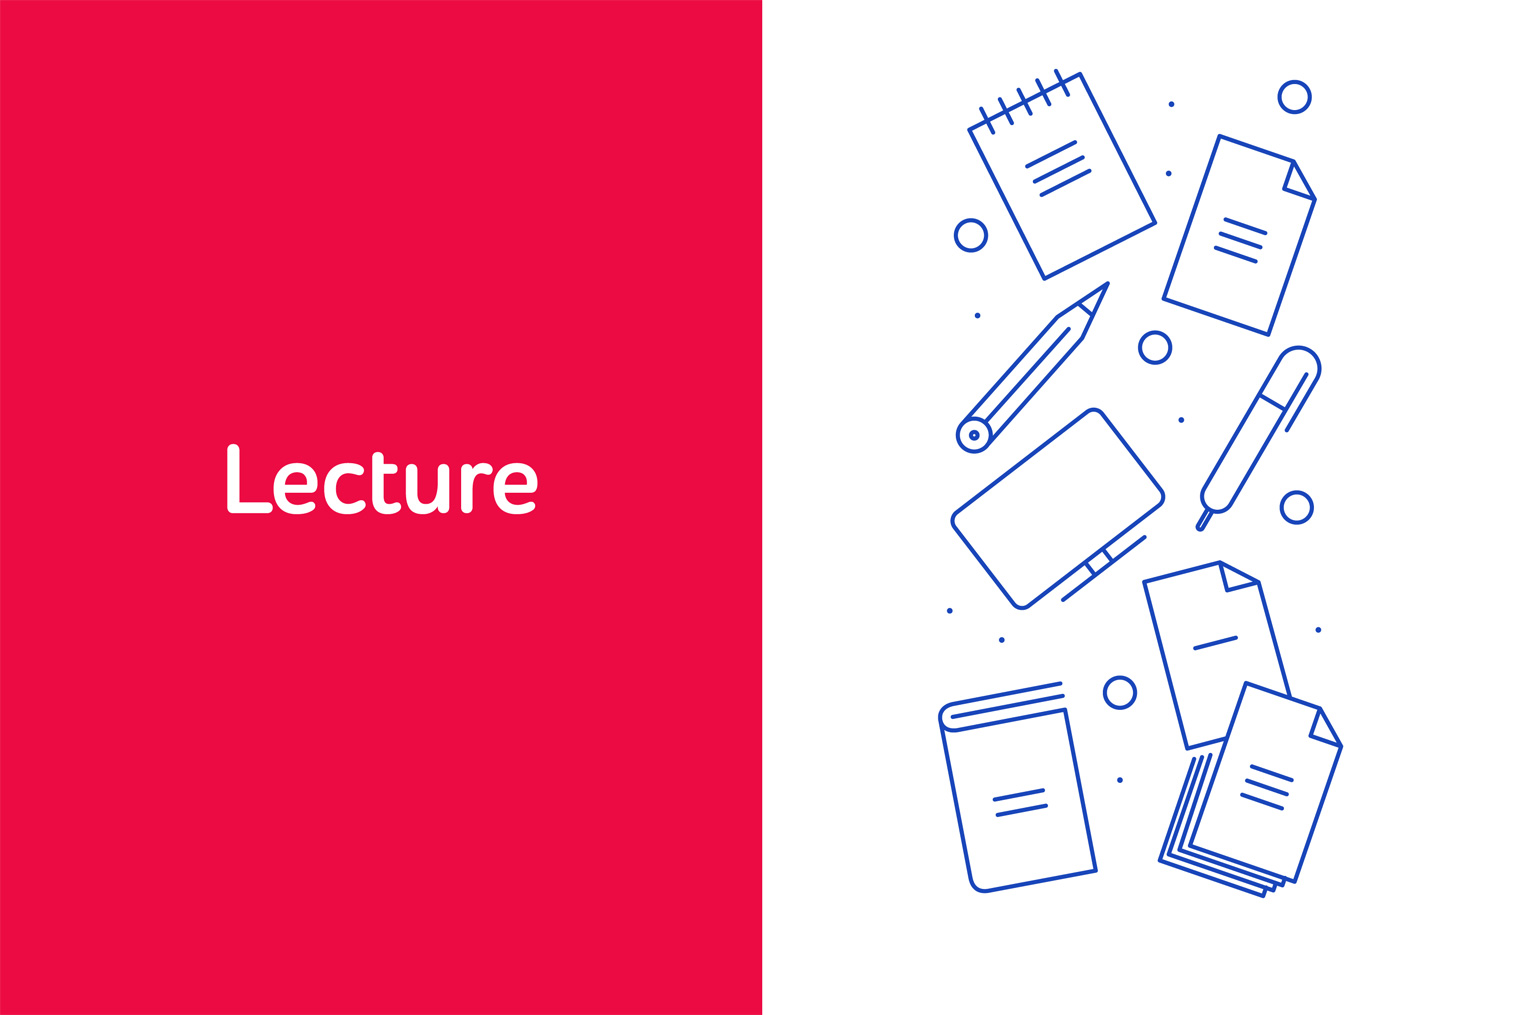 'Practical EMI: Wins and Fails' Lecture by Karen Barto